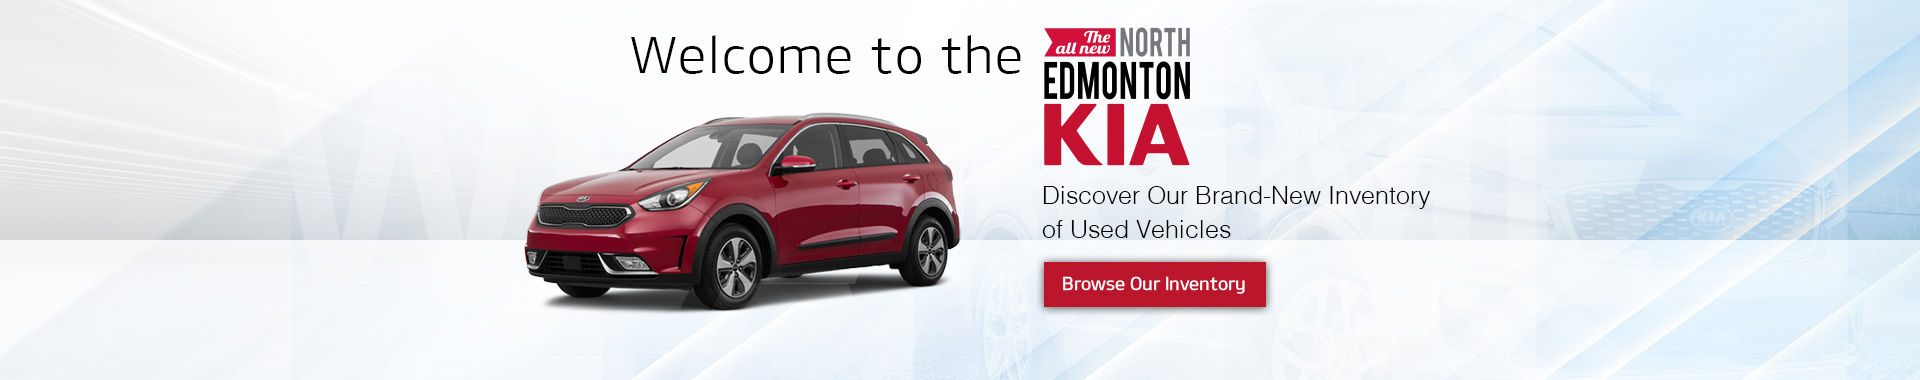 Welcome to the All-New North Edmonton Kia